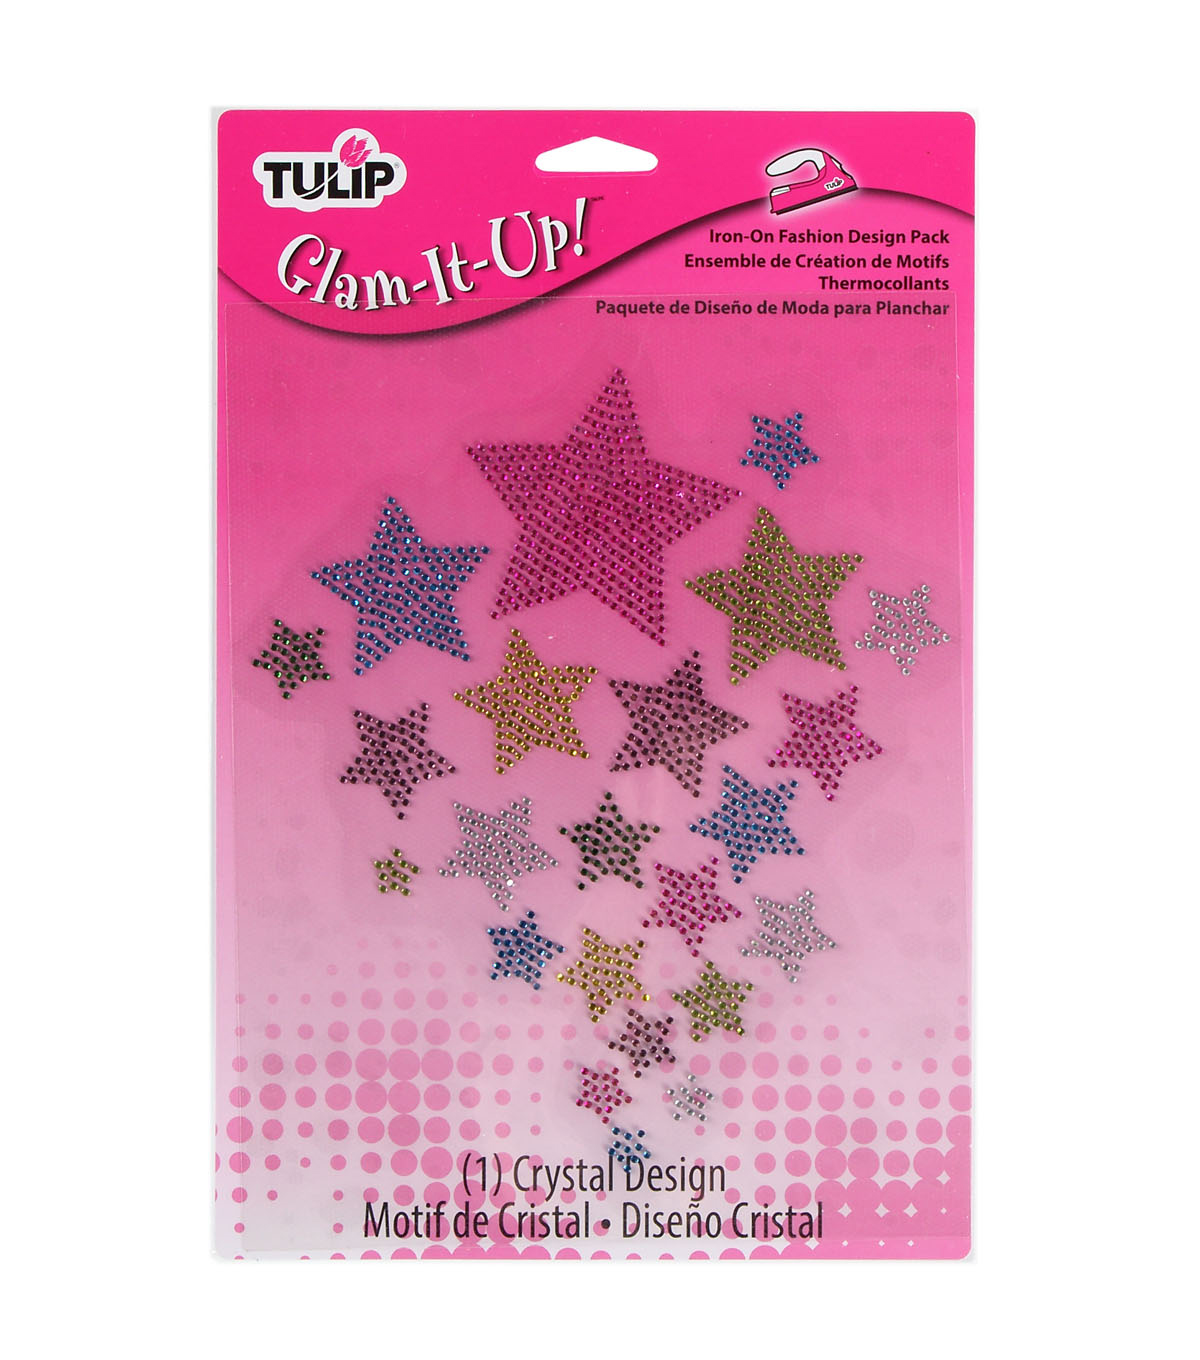 Tulip Glam-It-Up! Iron-On Fashion Designs Multi Stars